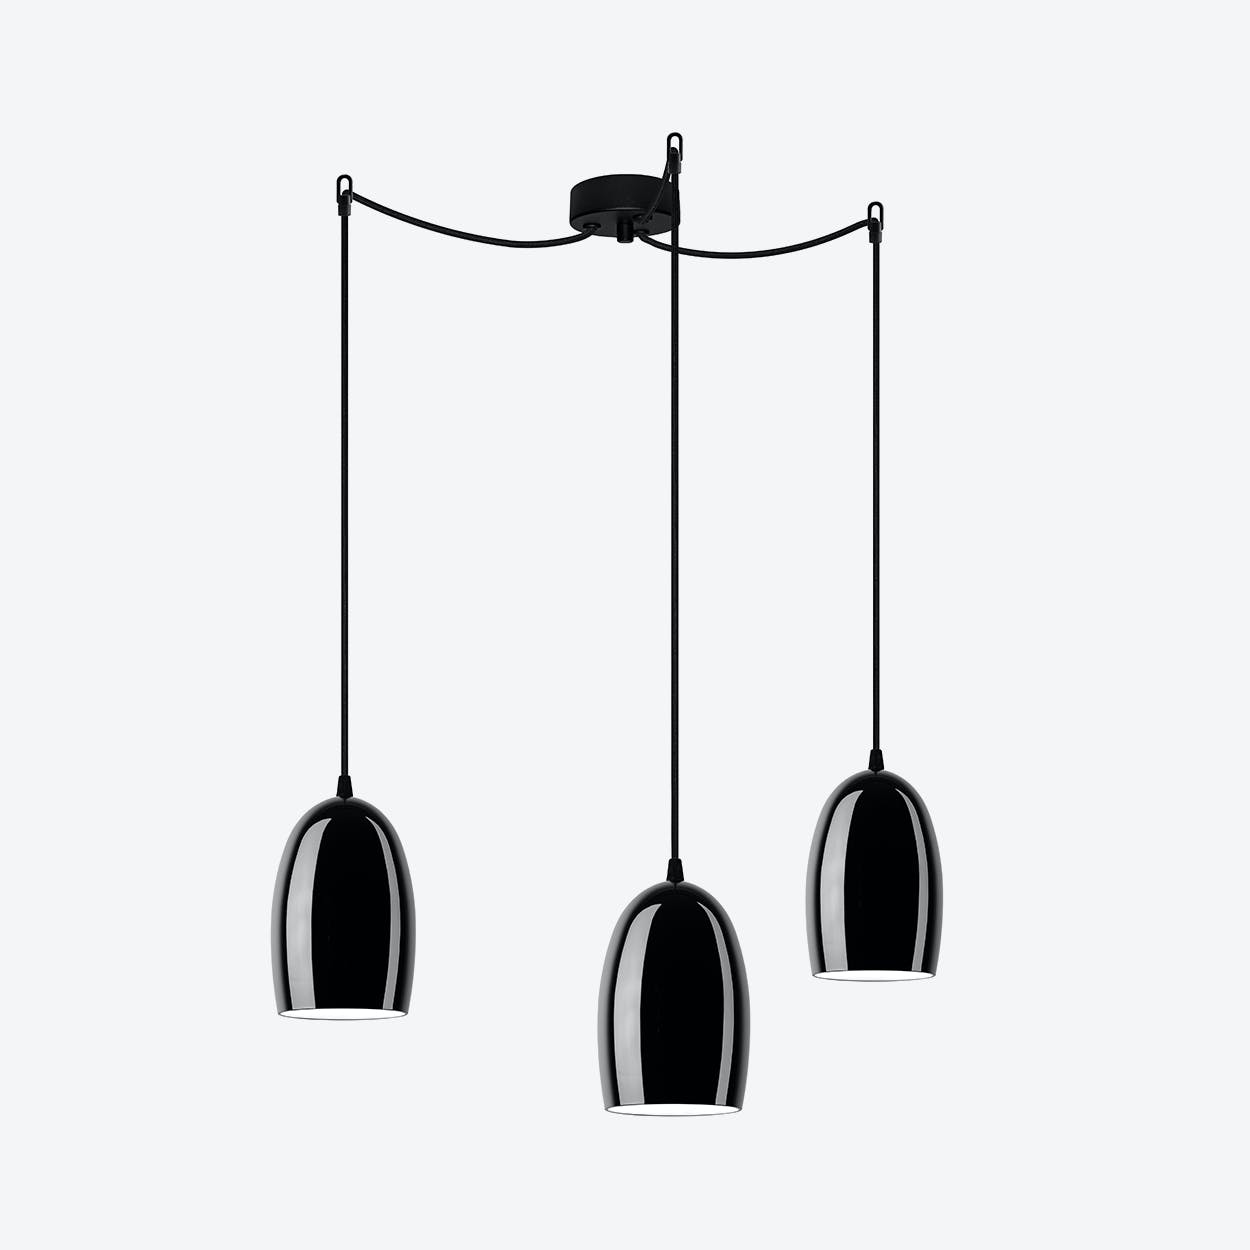 UME Triple Pendant Light in Glossy Black